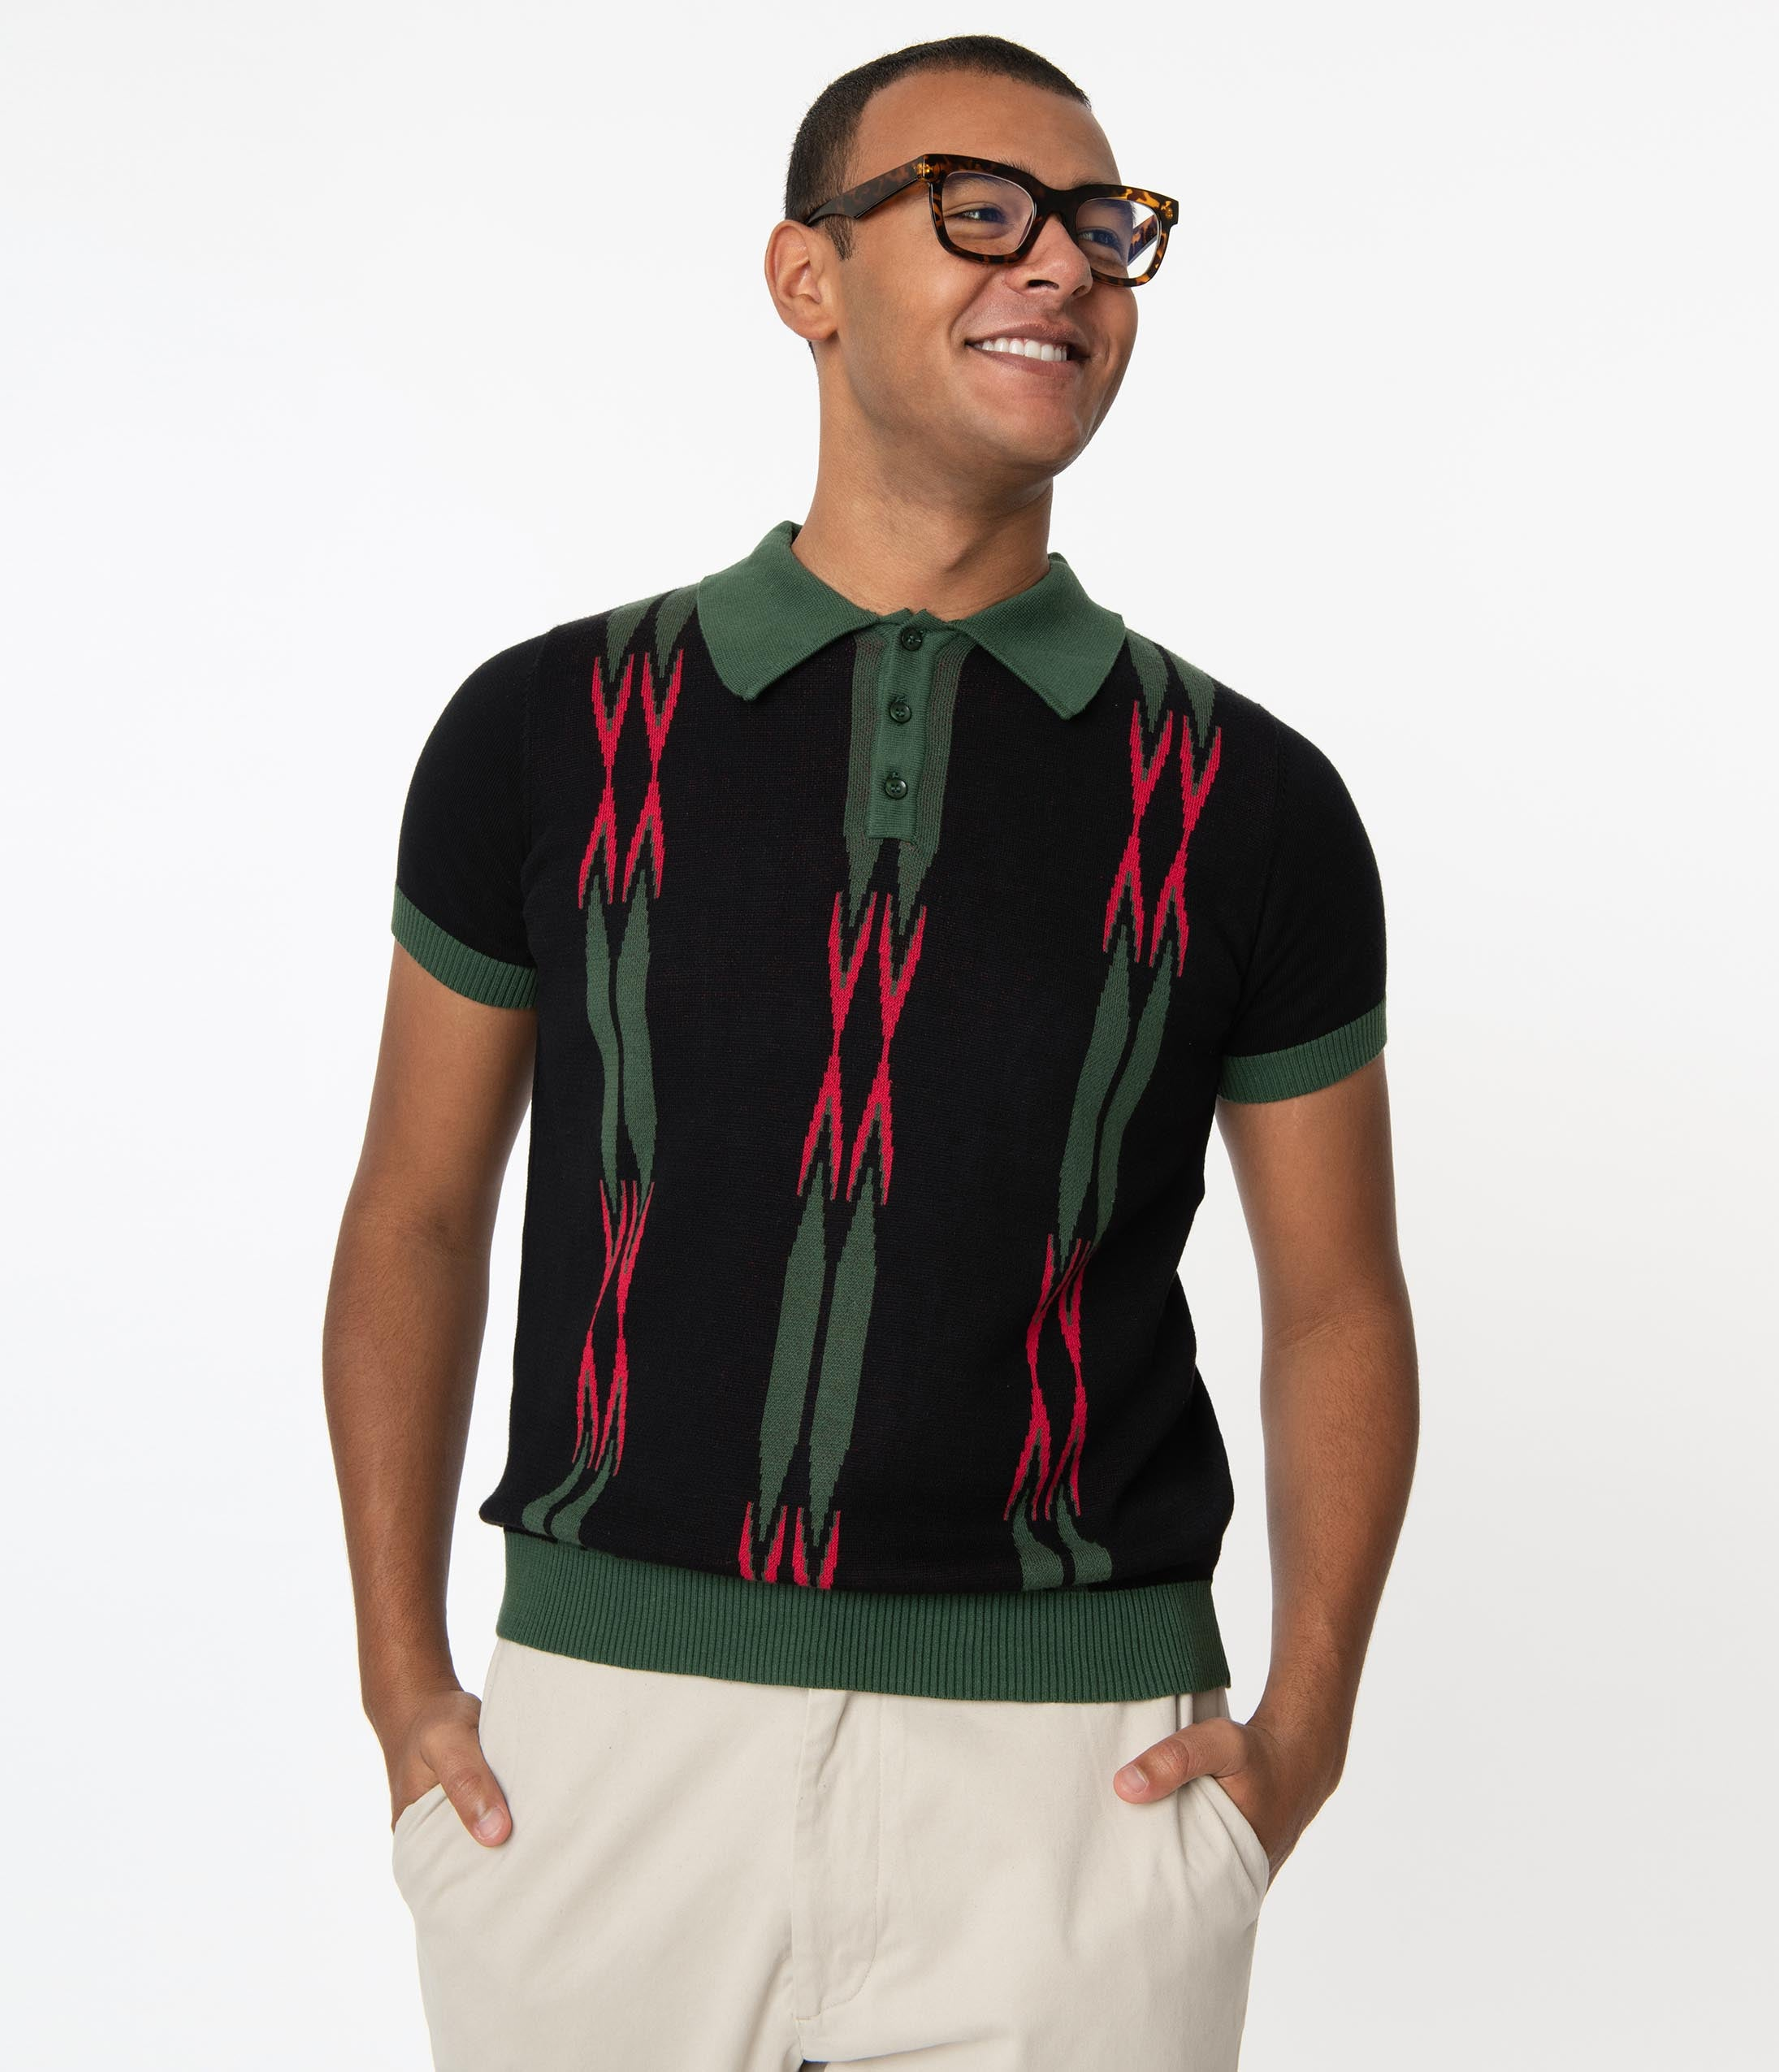 Mens Vintage Shirts – Casual, Dress, T-shirts, Polos Collectif Black  Green Marylebone Pablo Mens Polo Shirt $66.00 AT vintagedancer.com